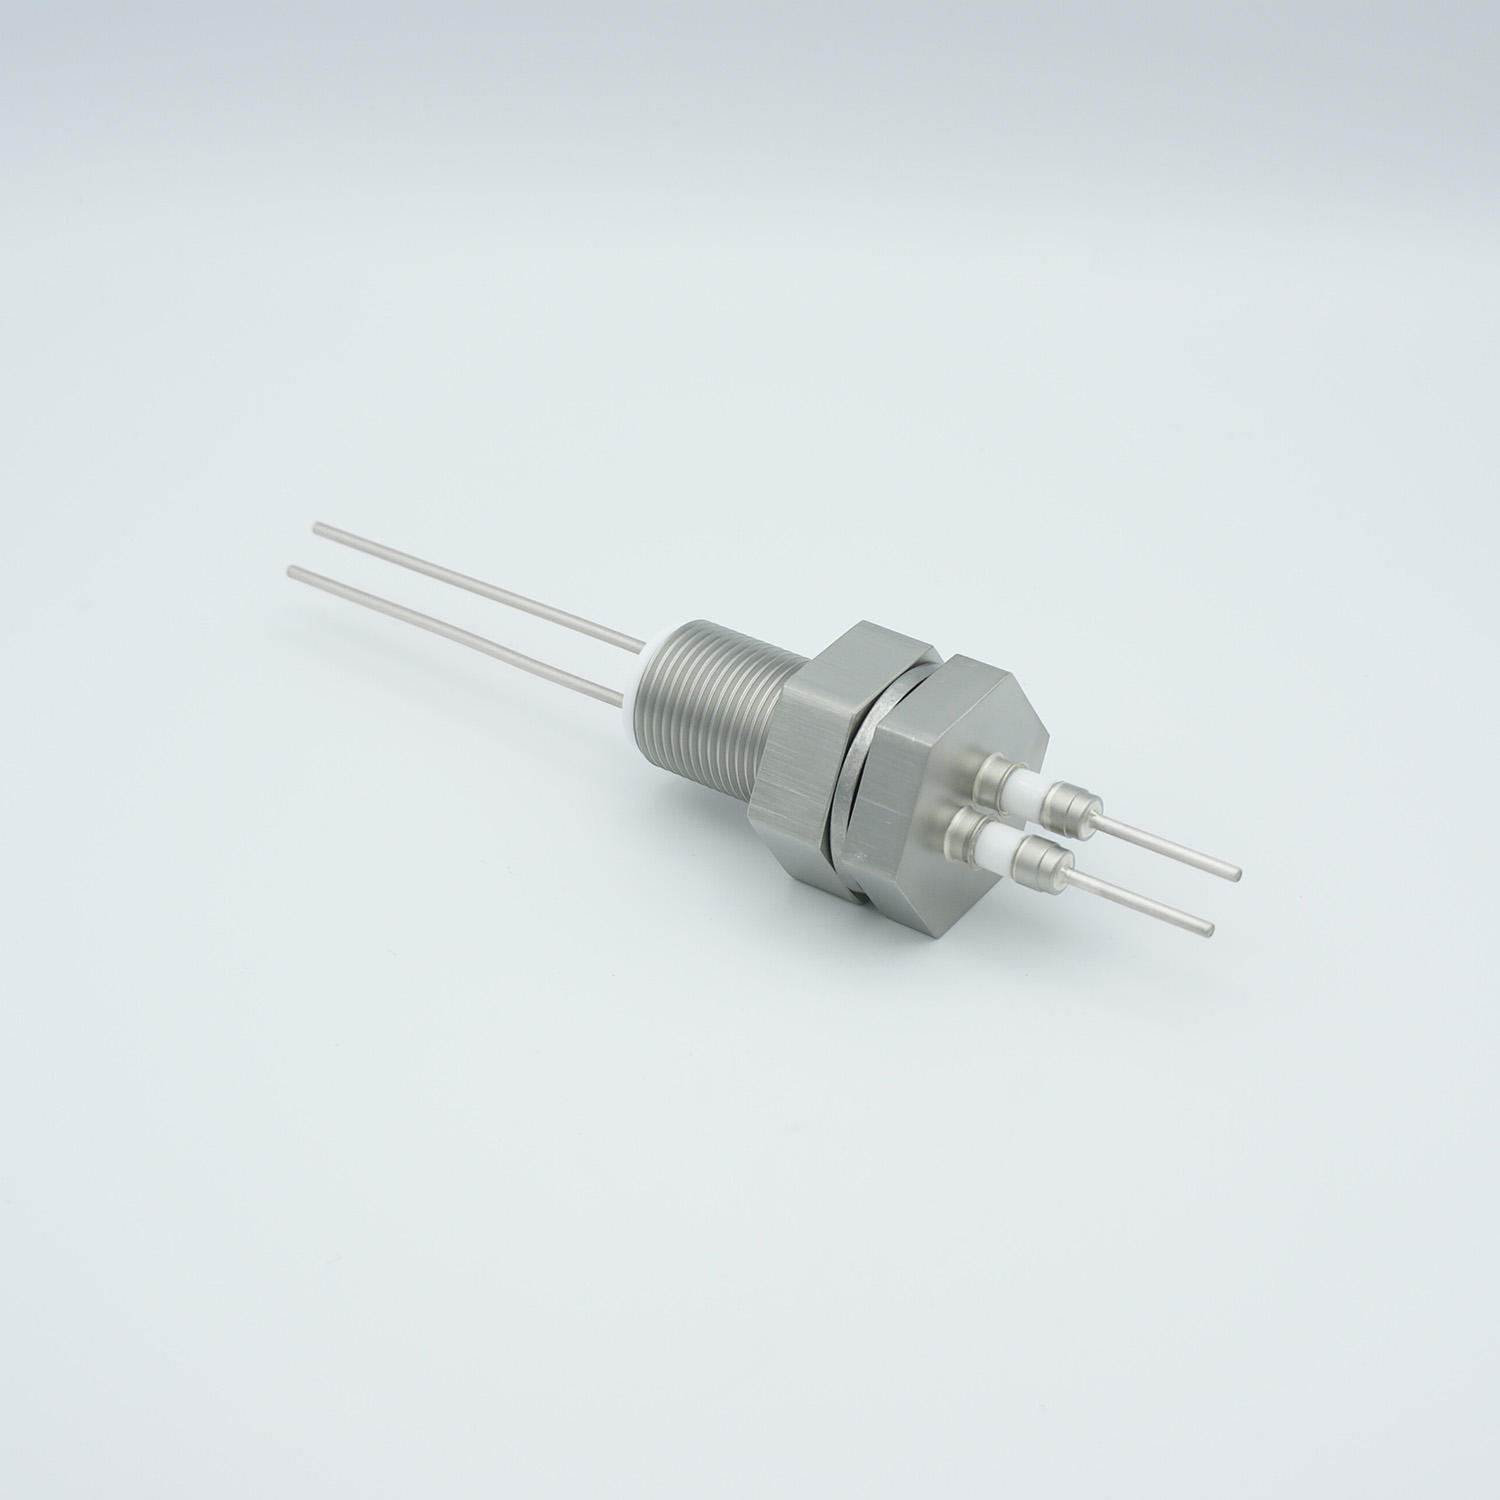 2 pins feedthrough 2000Volt / 3 Amp. Stainless steel conductor, base plate fitting